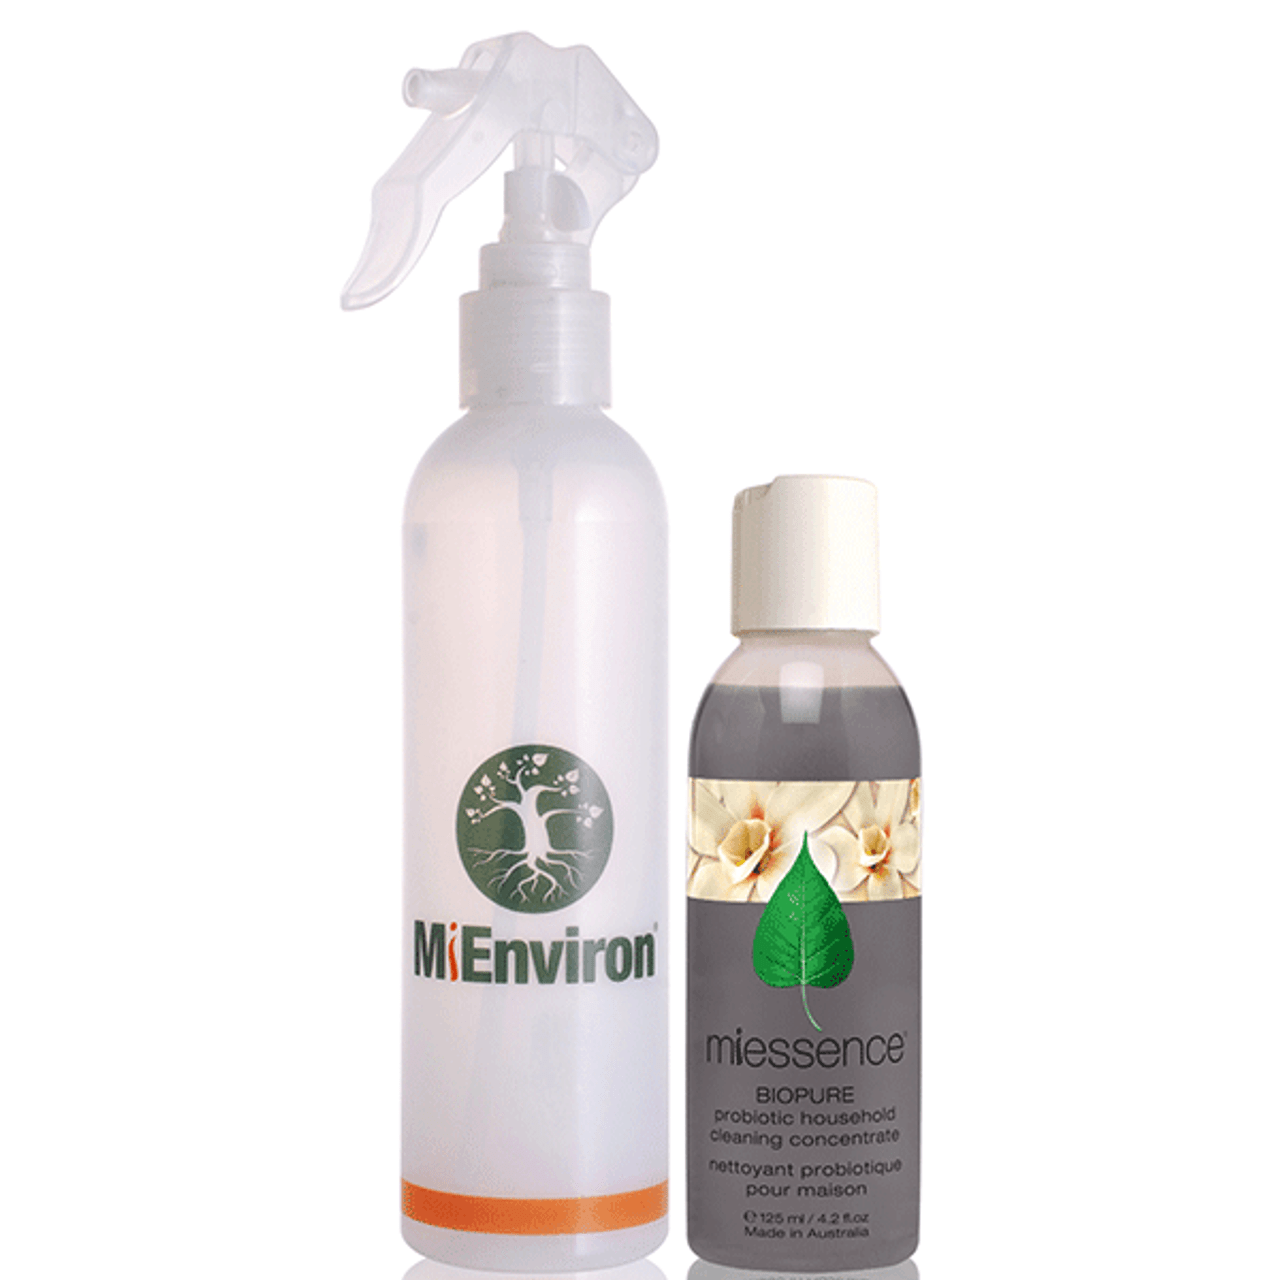 Household Cleaning Pack - MiEnviron BioPure Probiotic Household Cleaning  Concentrate & Spray Bottle